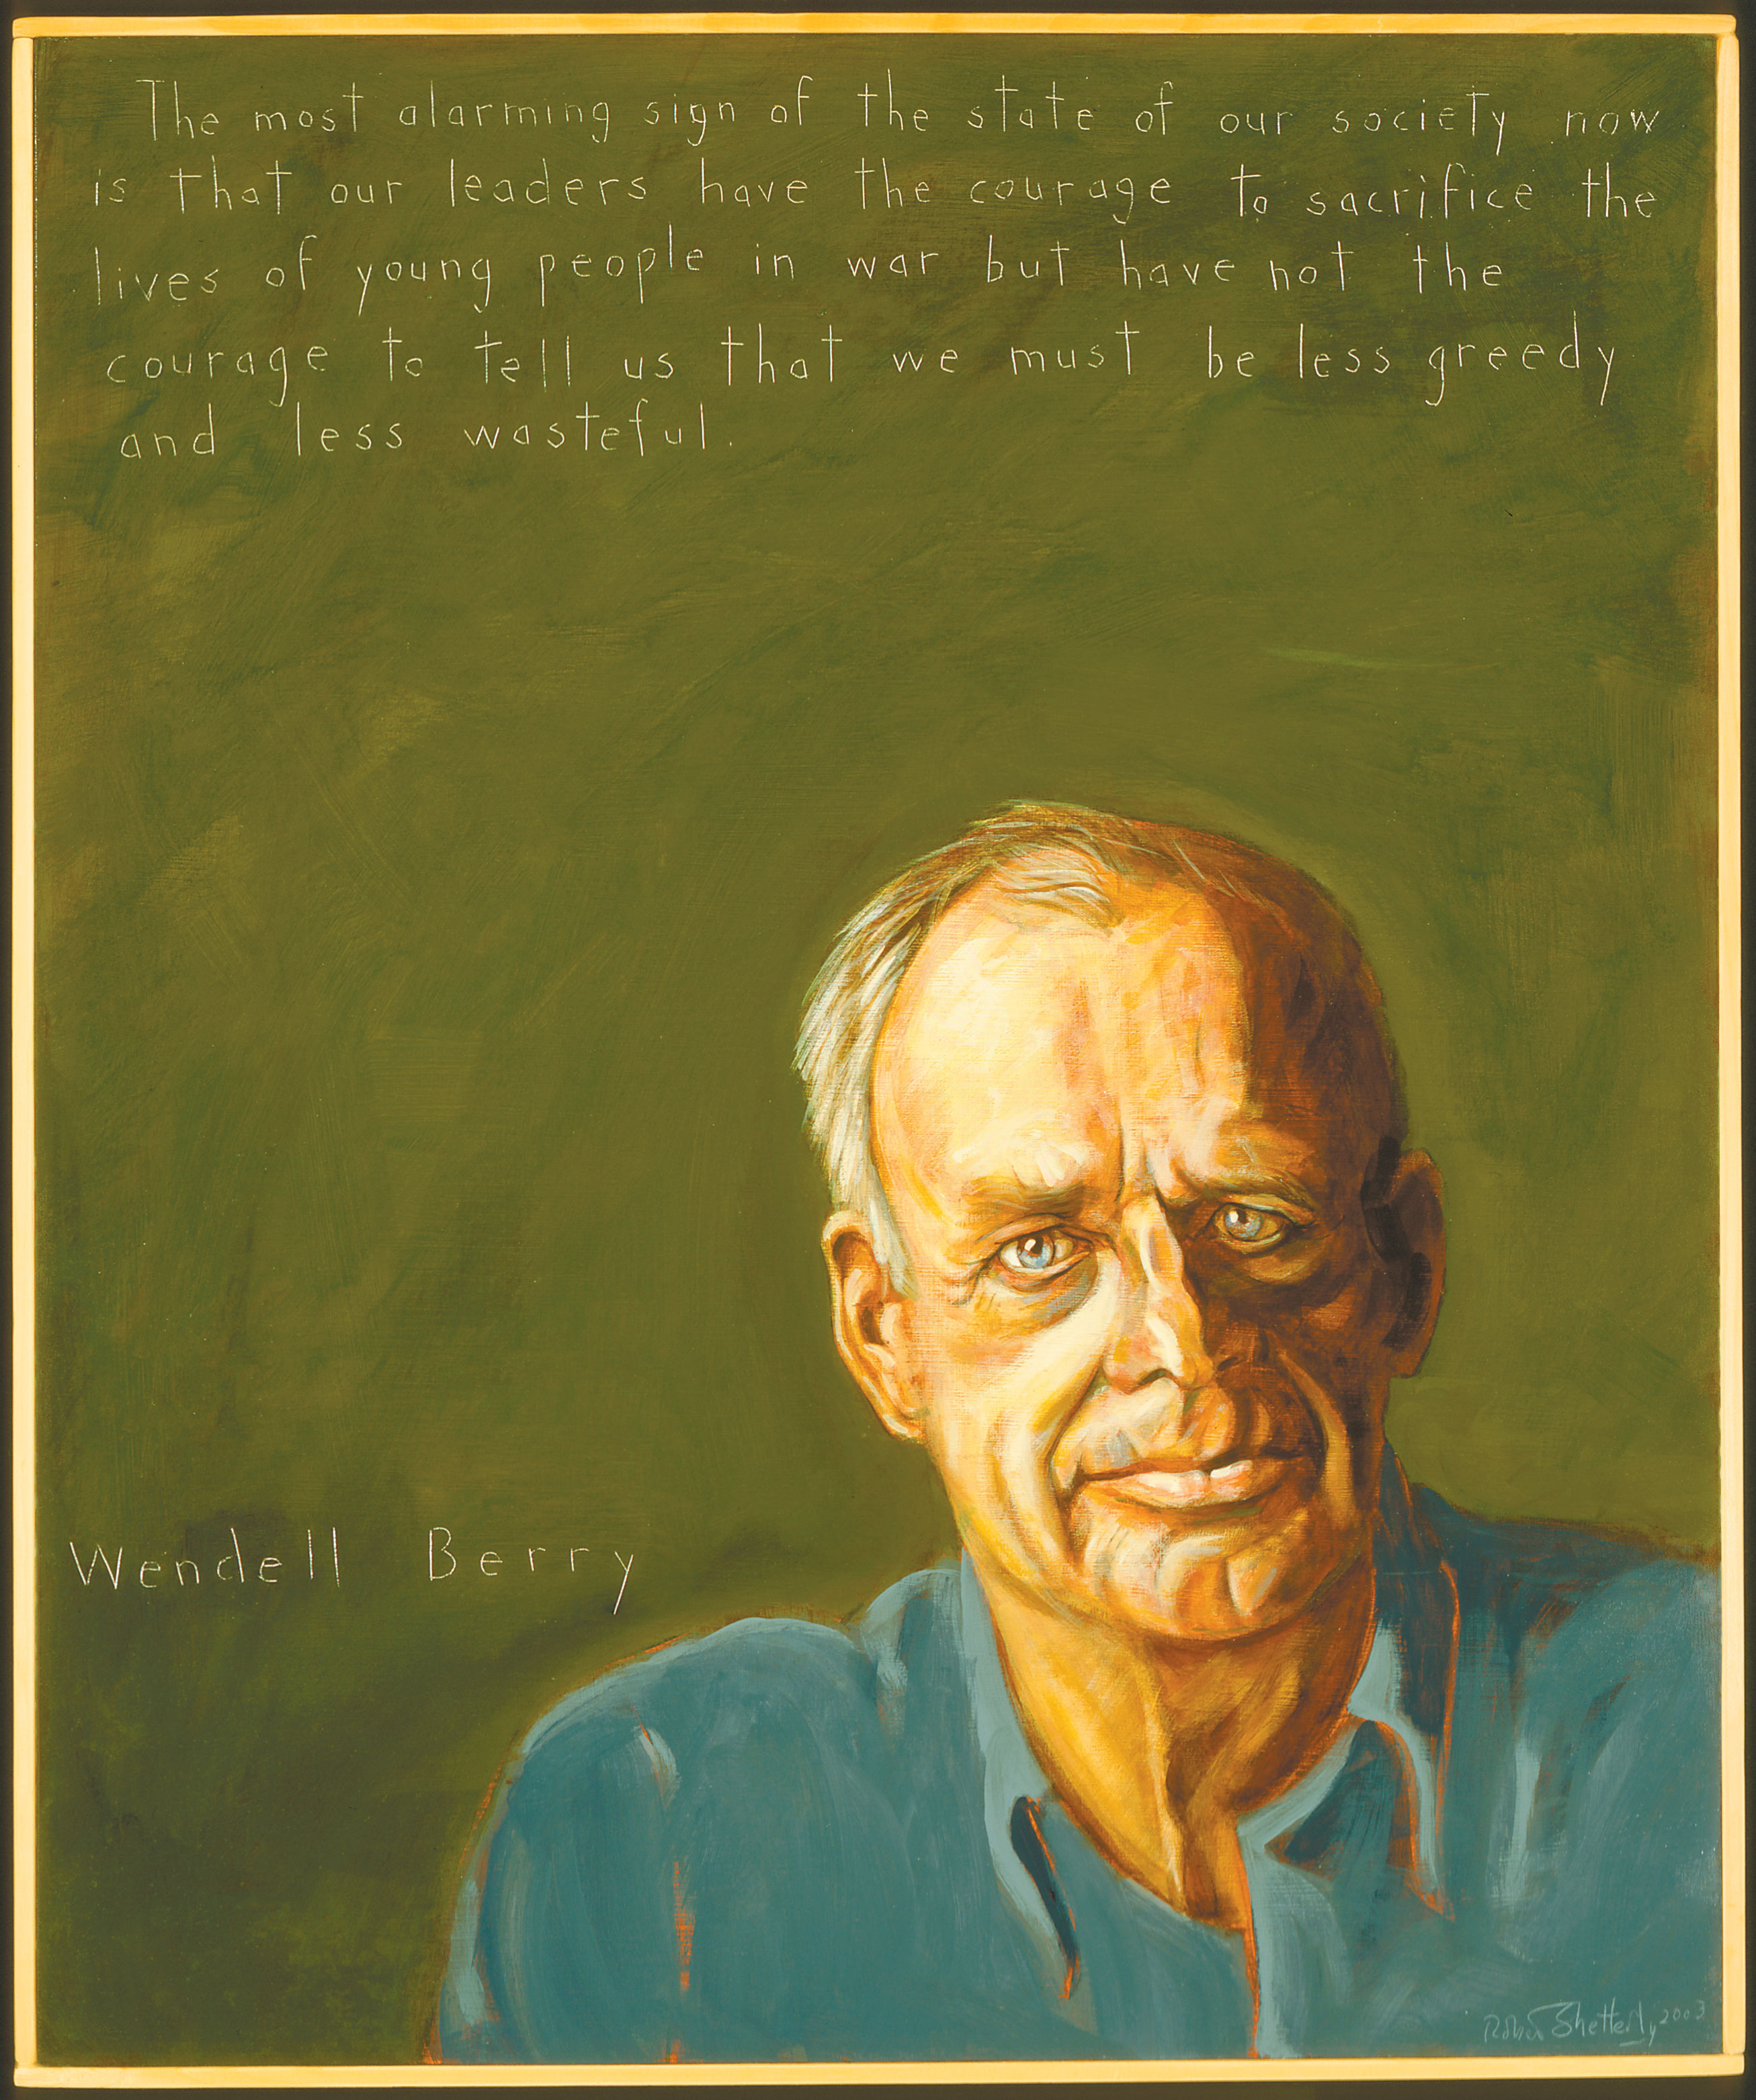 wendell berry essay wendell berrys use of butconstructions in wendell berry s use of but constructions in nature writing craft wendell berry s use of